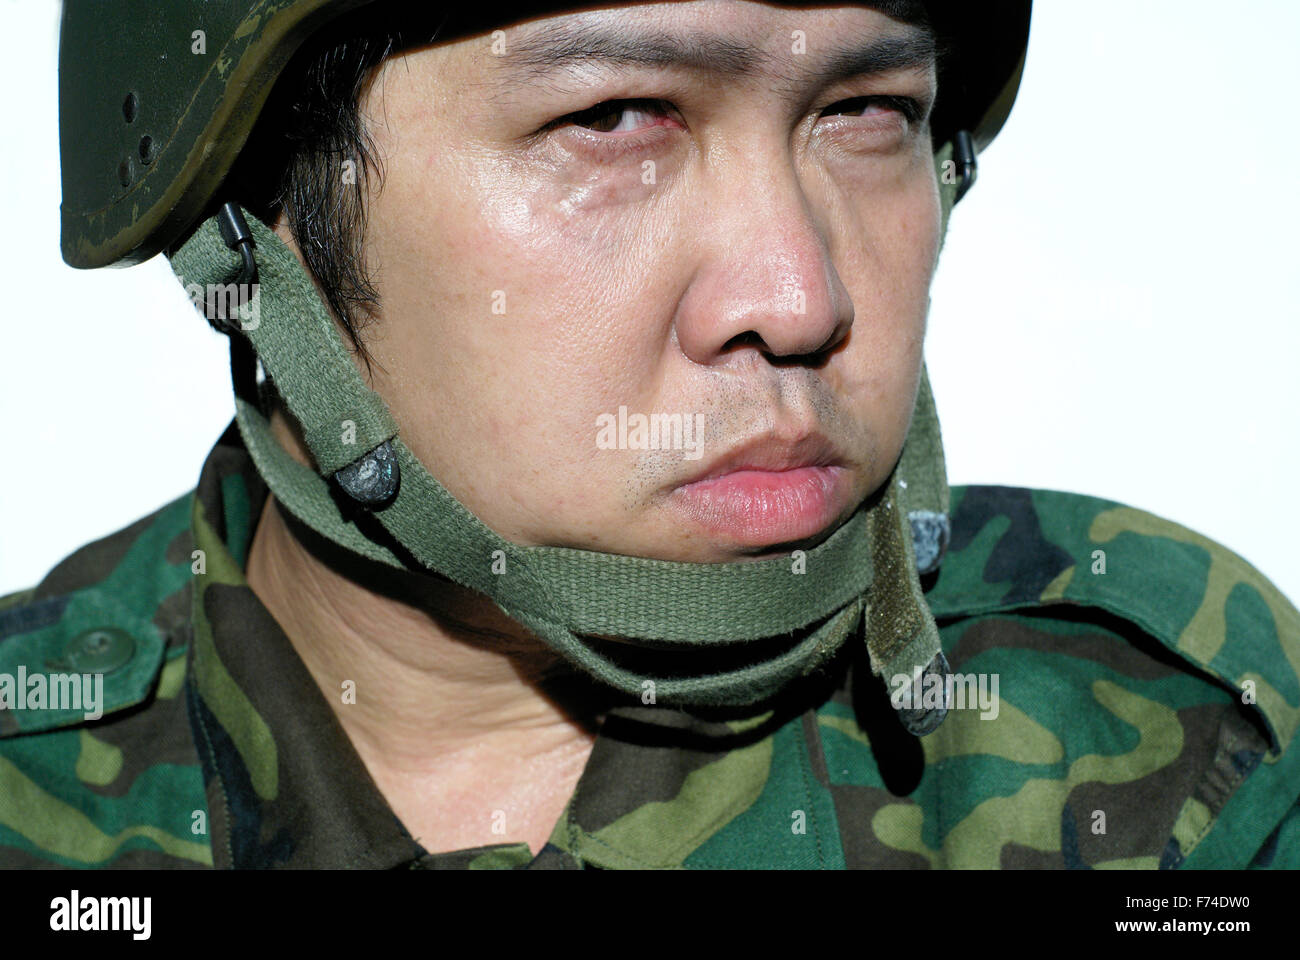 Grim and critical asian soldier with helmet - Stock Image